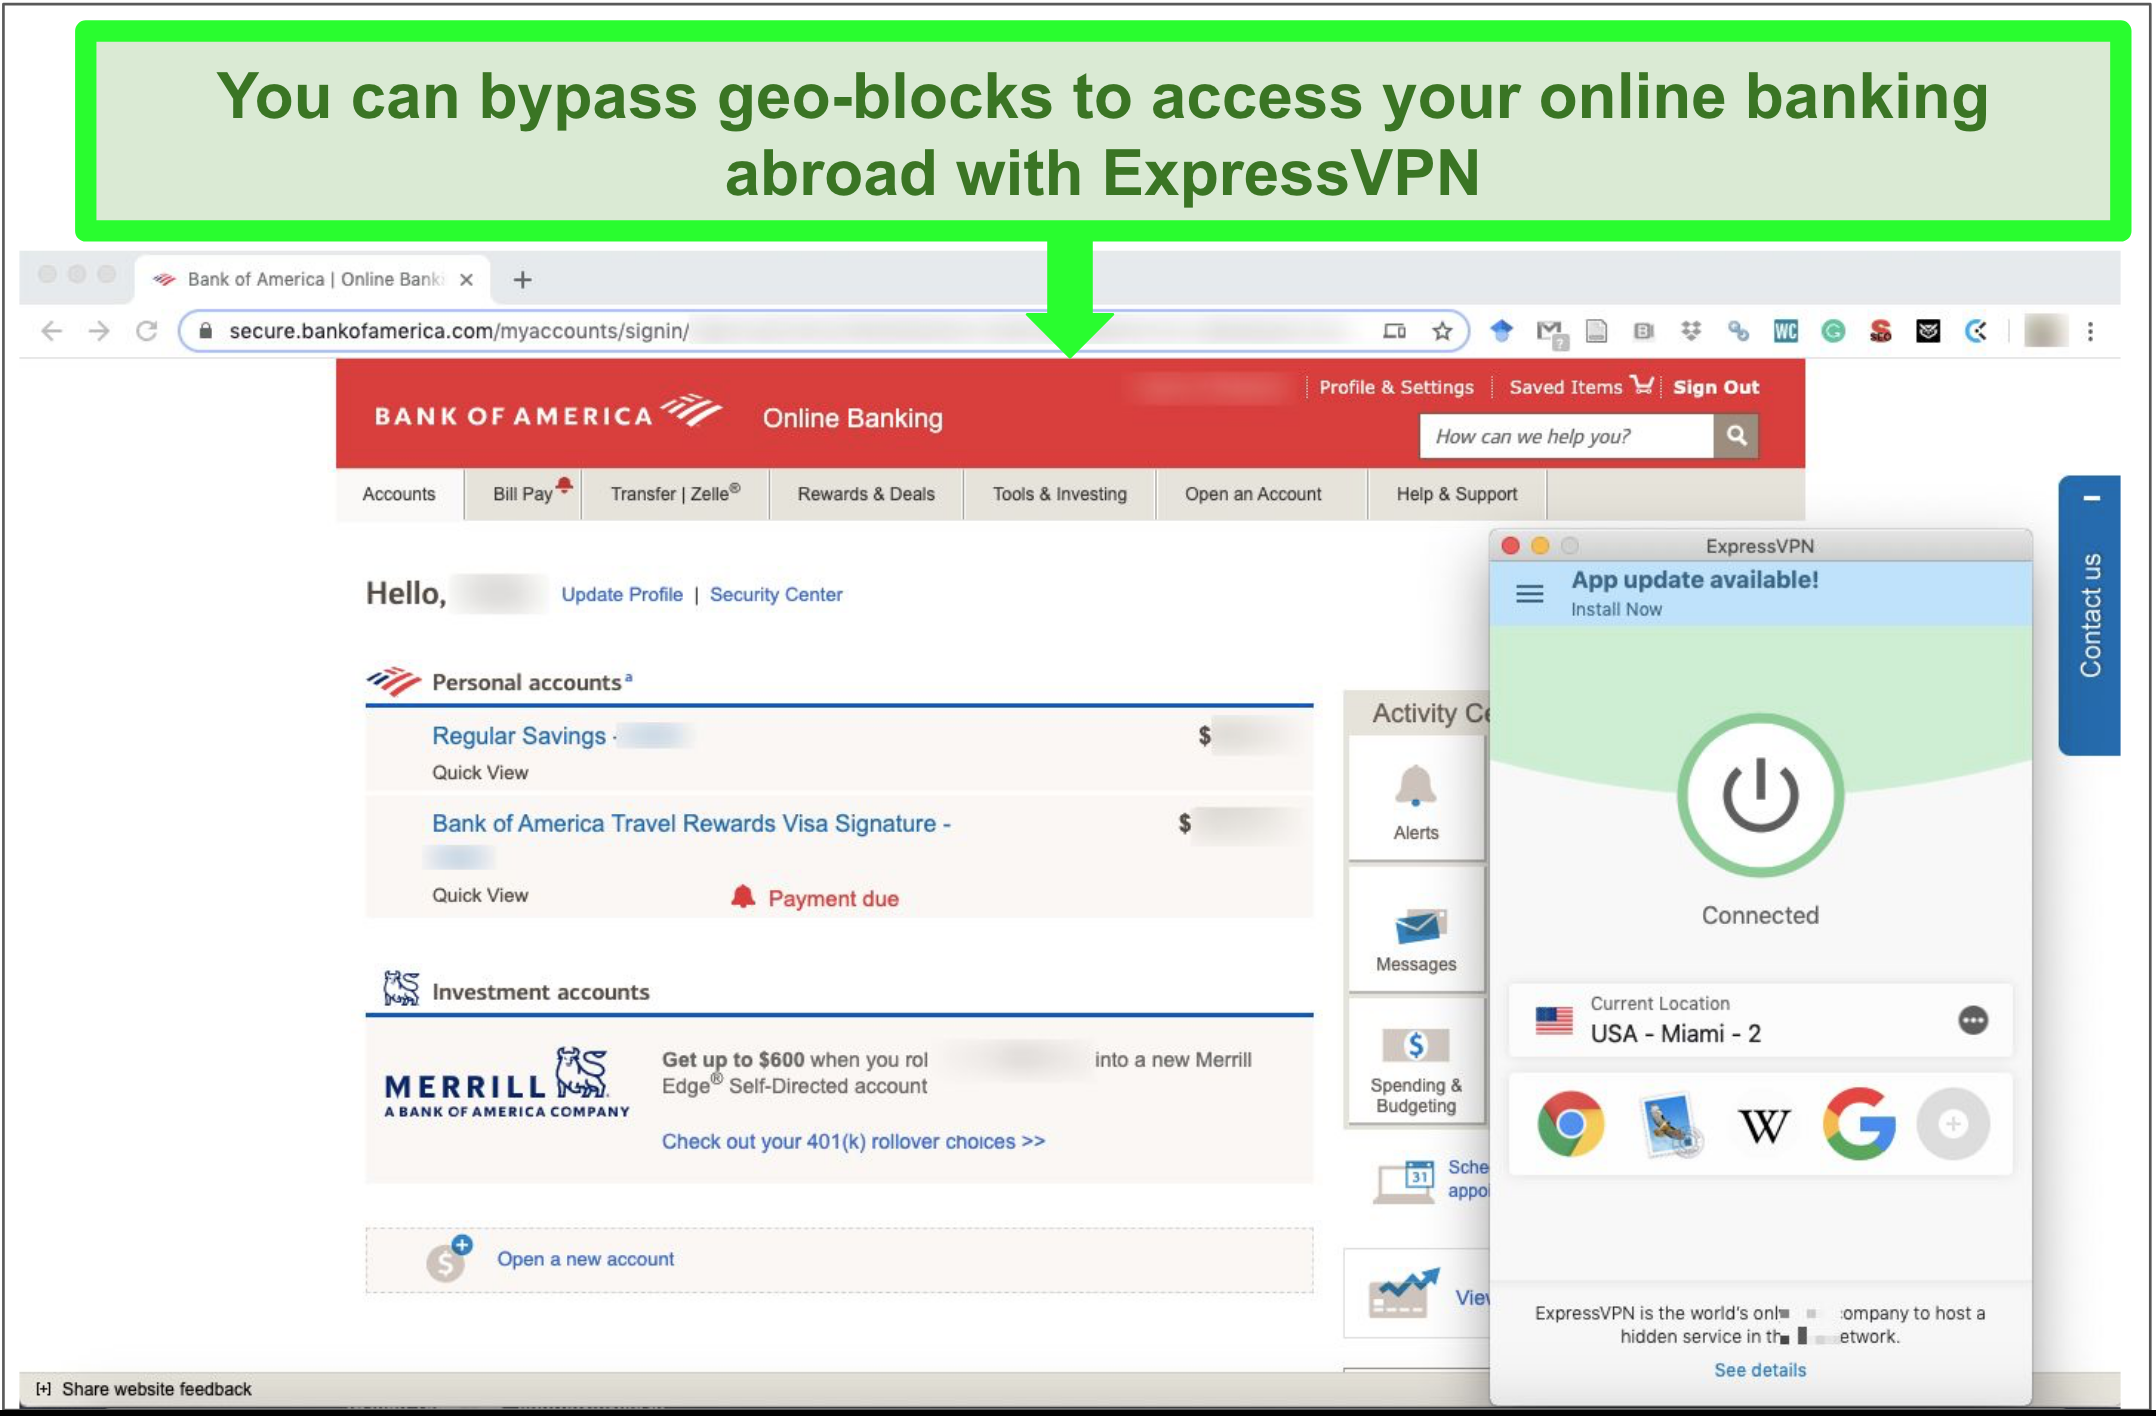 Screenshot of ExpressVPN connected to US server and allowing user to access Bank of America account.